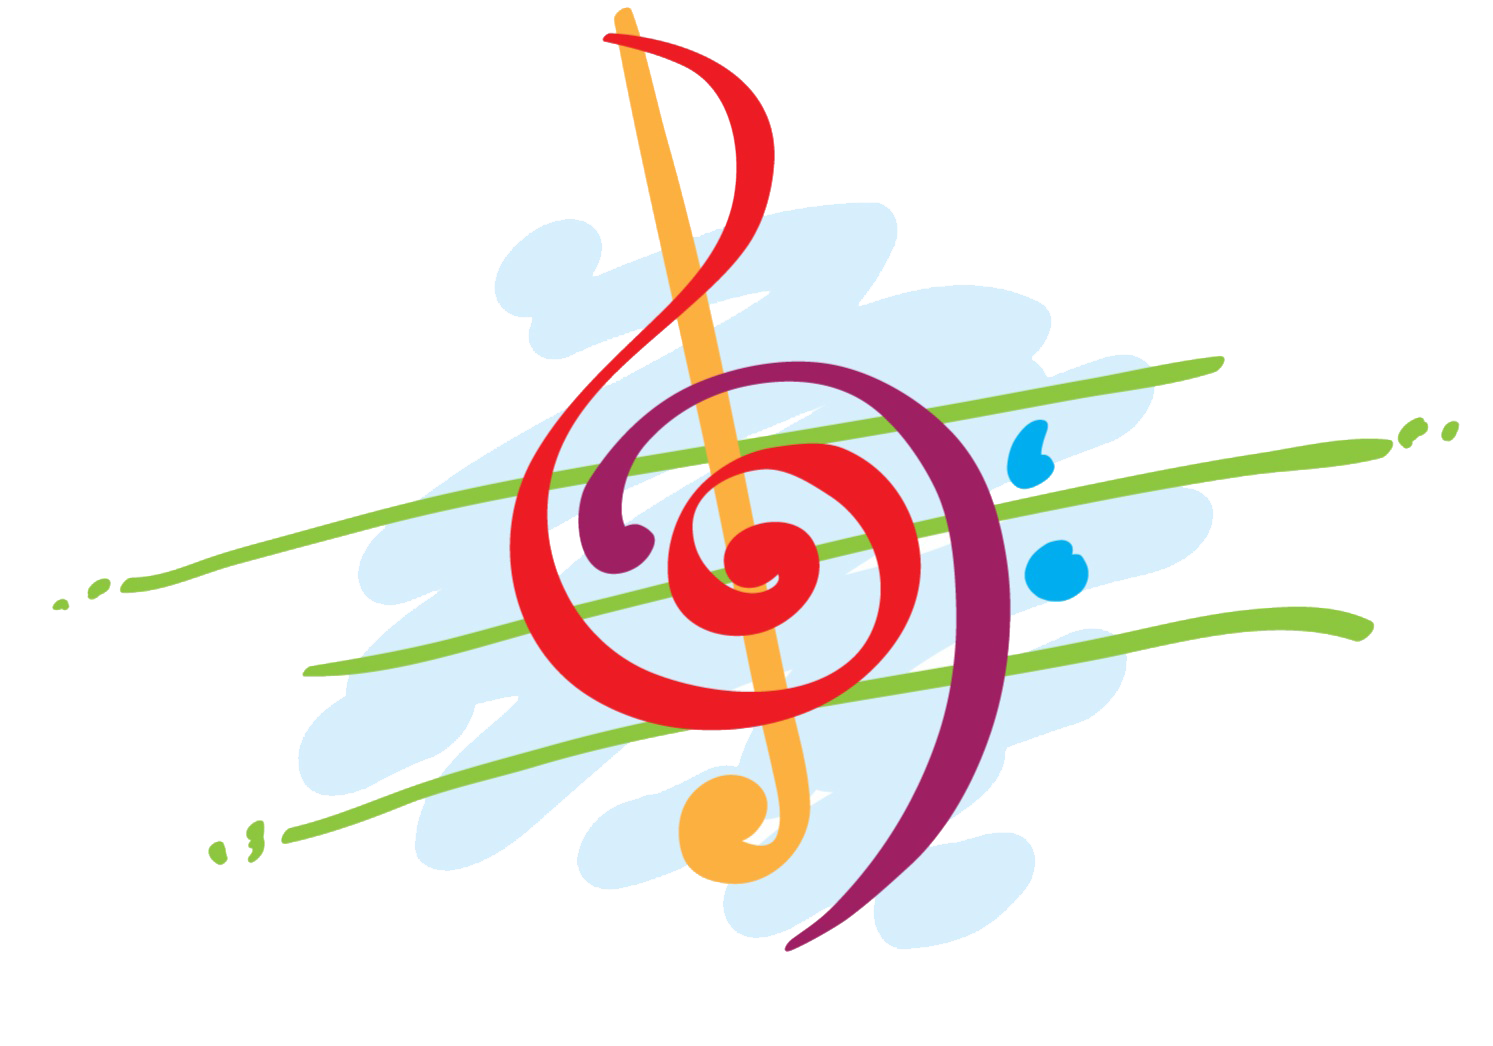 Music symbols png free download best music symbols png on 1493x1046 image of colorful music clipart voltagebd Images